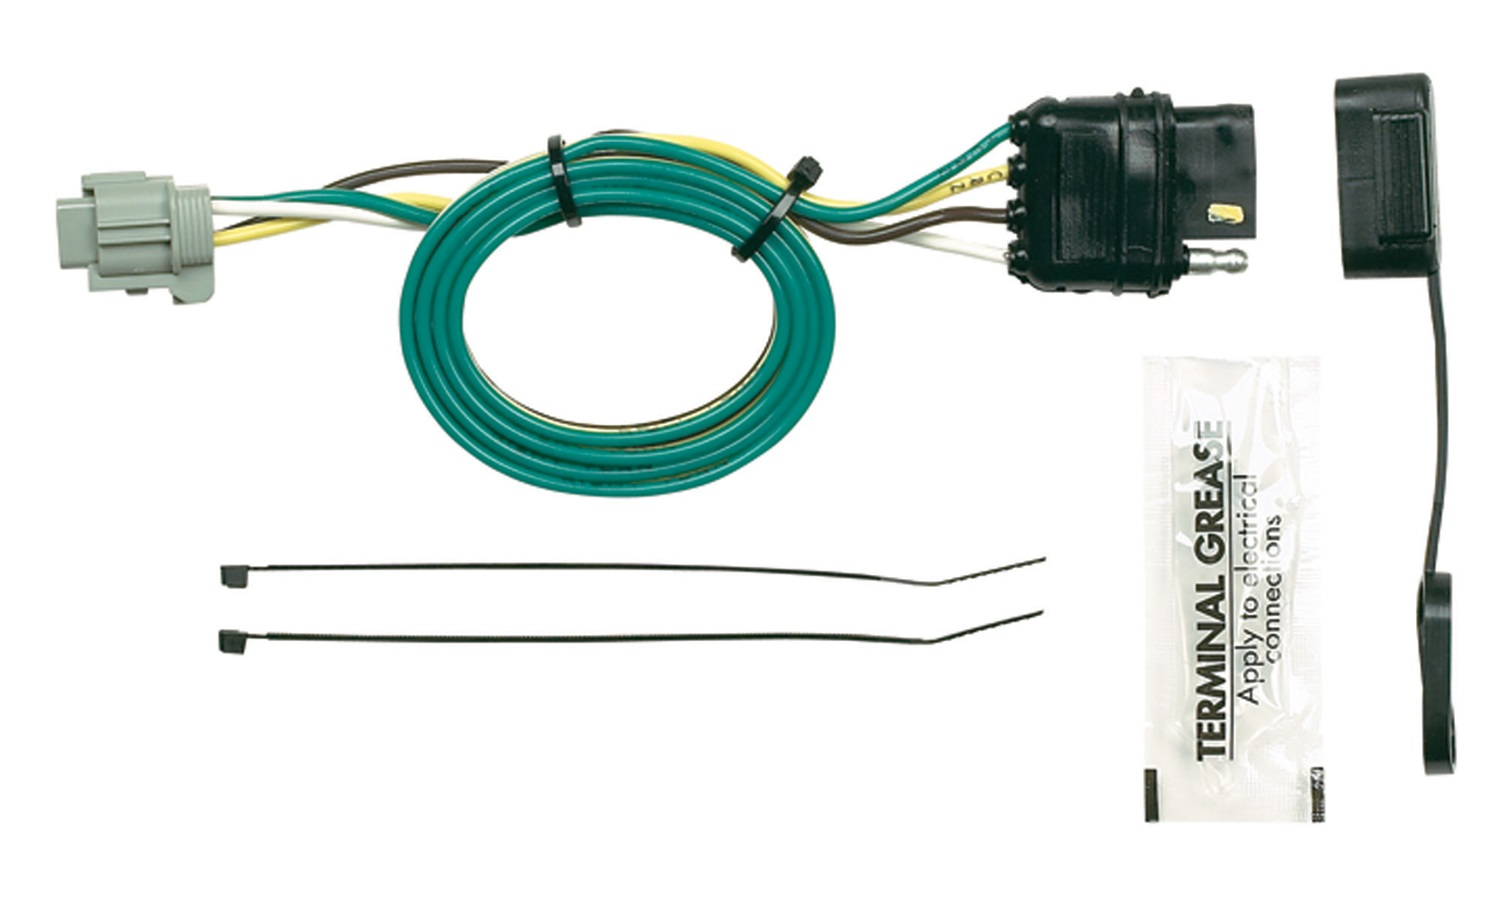 Rv Trailer Camper Parts Wiring Harness Hopkins Towing Solution 43595 Plug In Simple Vehicle To